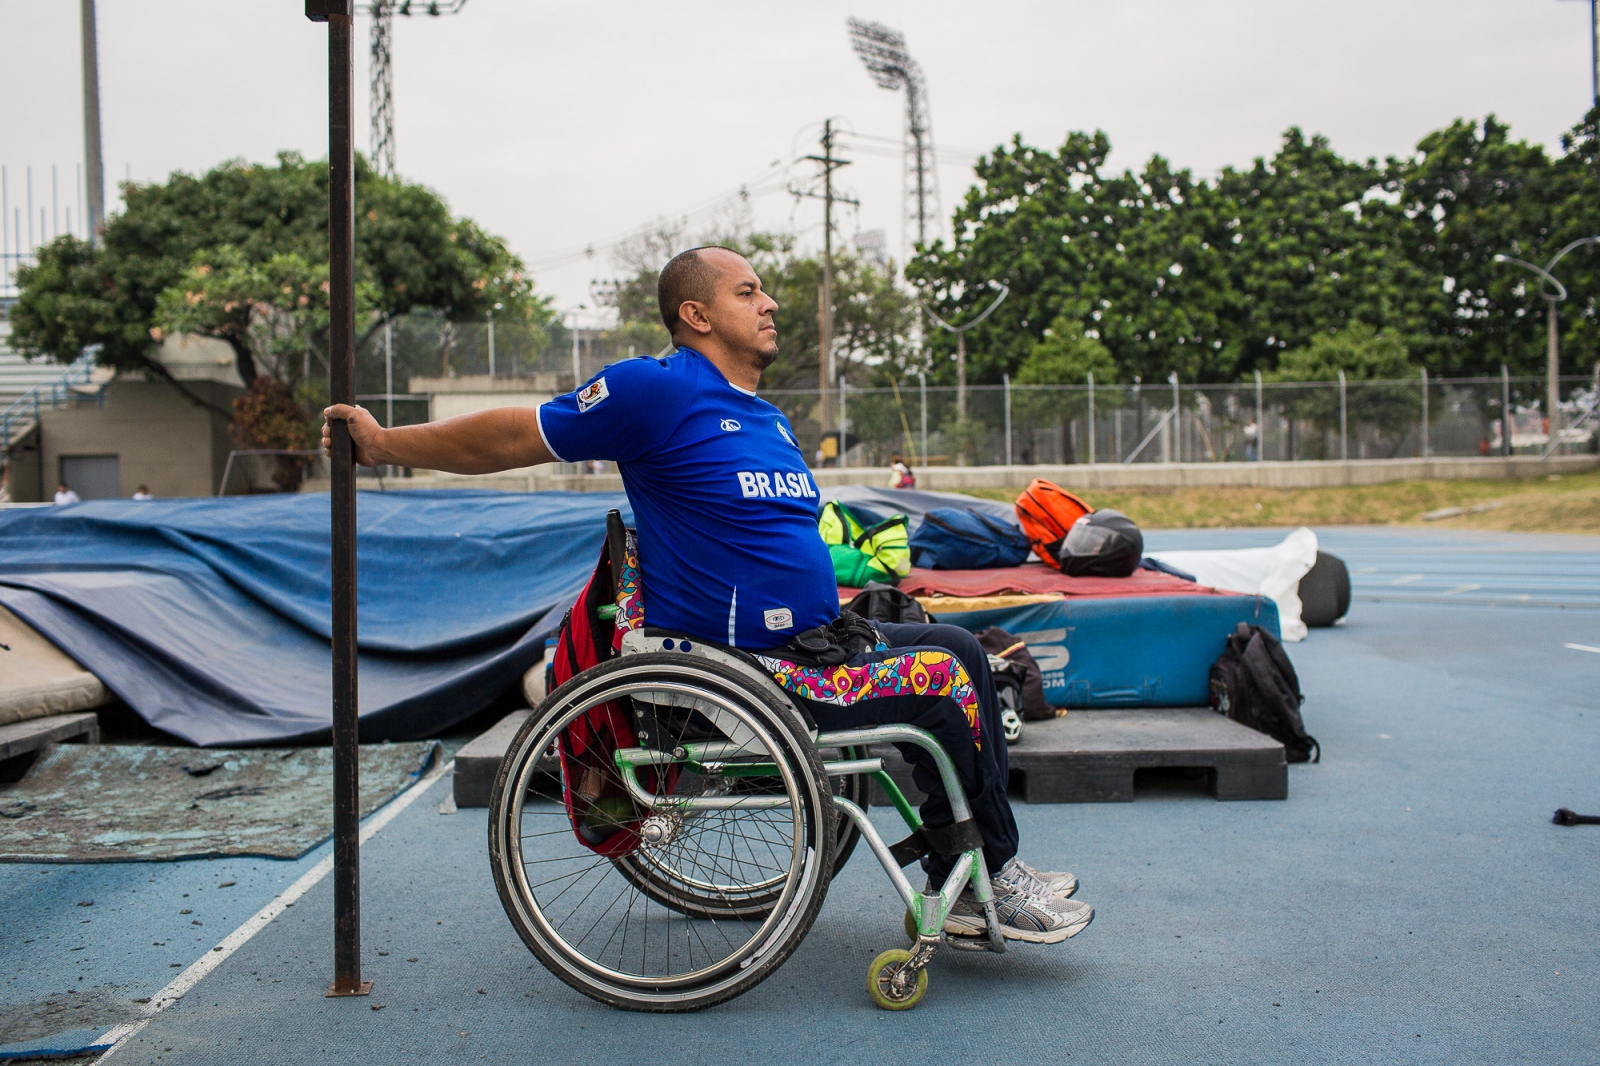 Joe Gonzalez Bettencourt, 38, warms up before the practice of weight throwing at Atanasio Girardot Stadium, Medellin, 7th March, 2016.